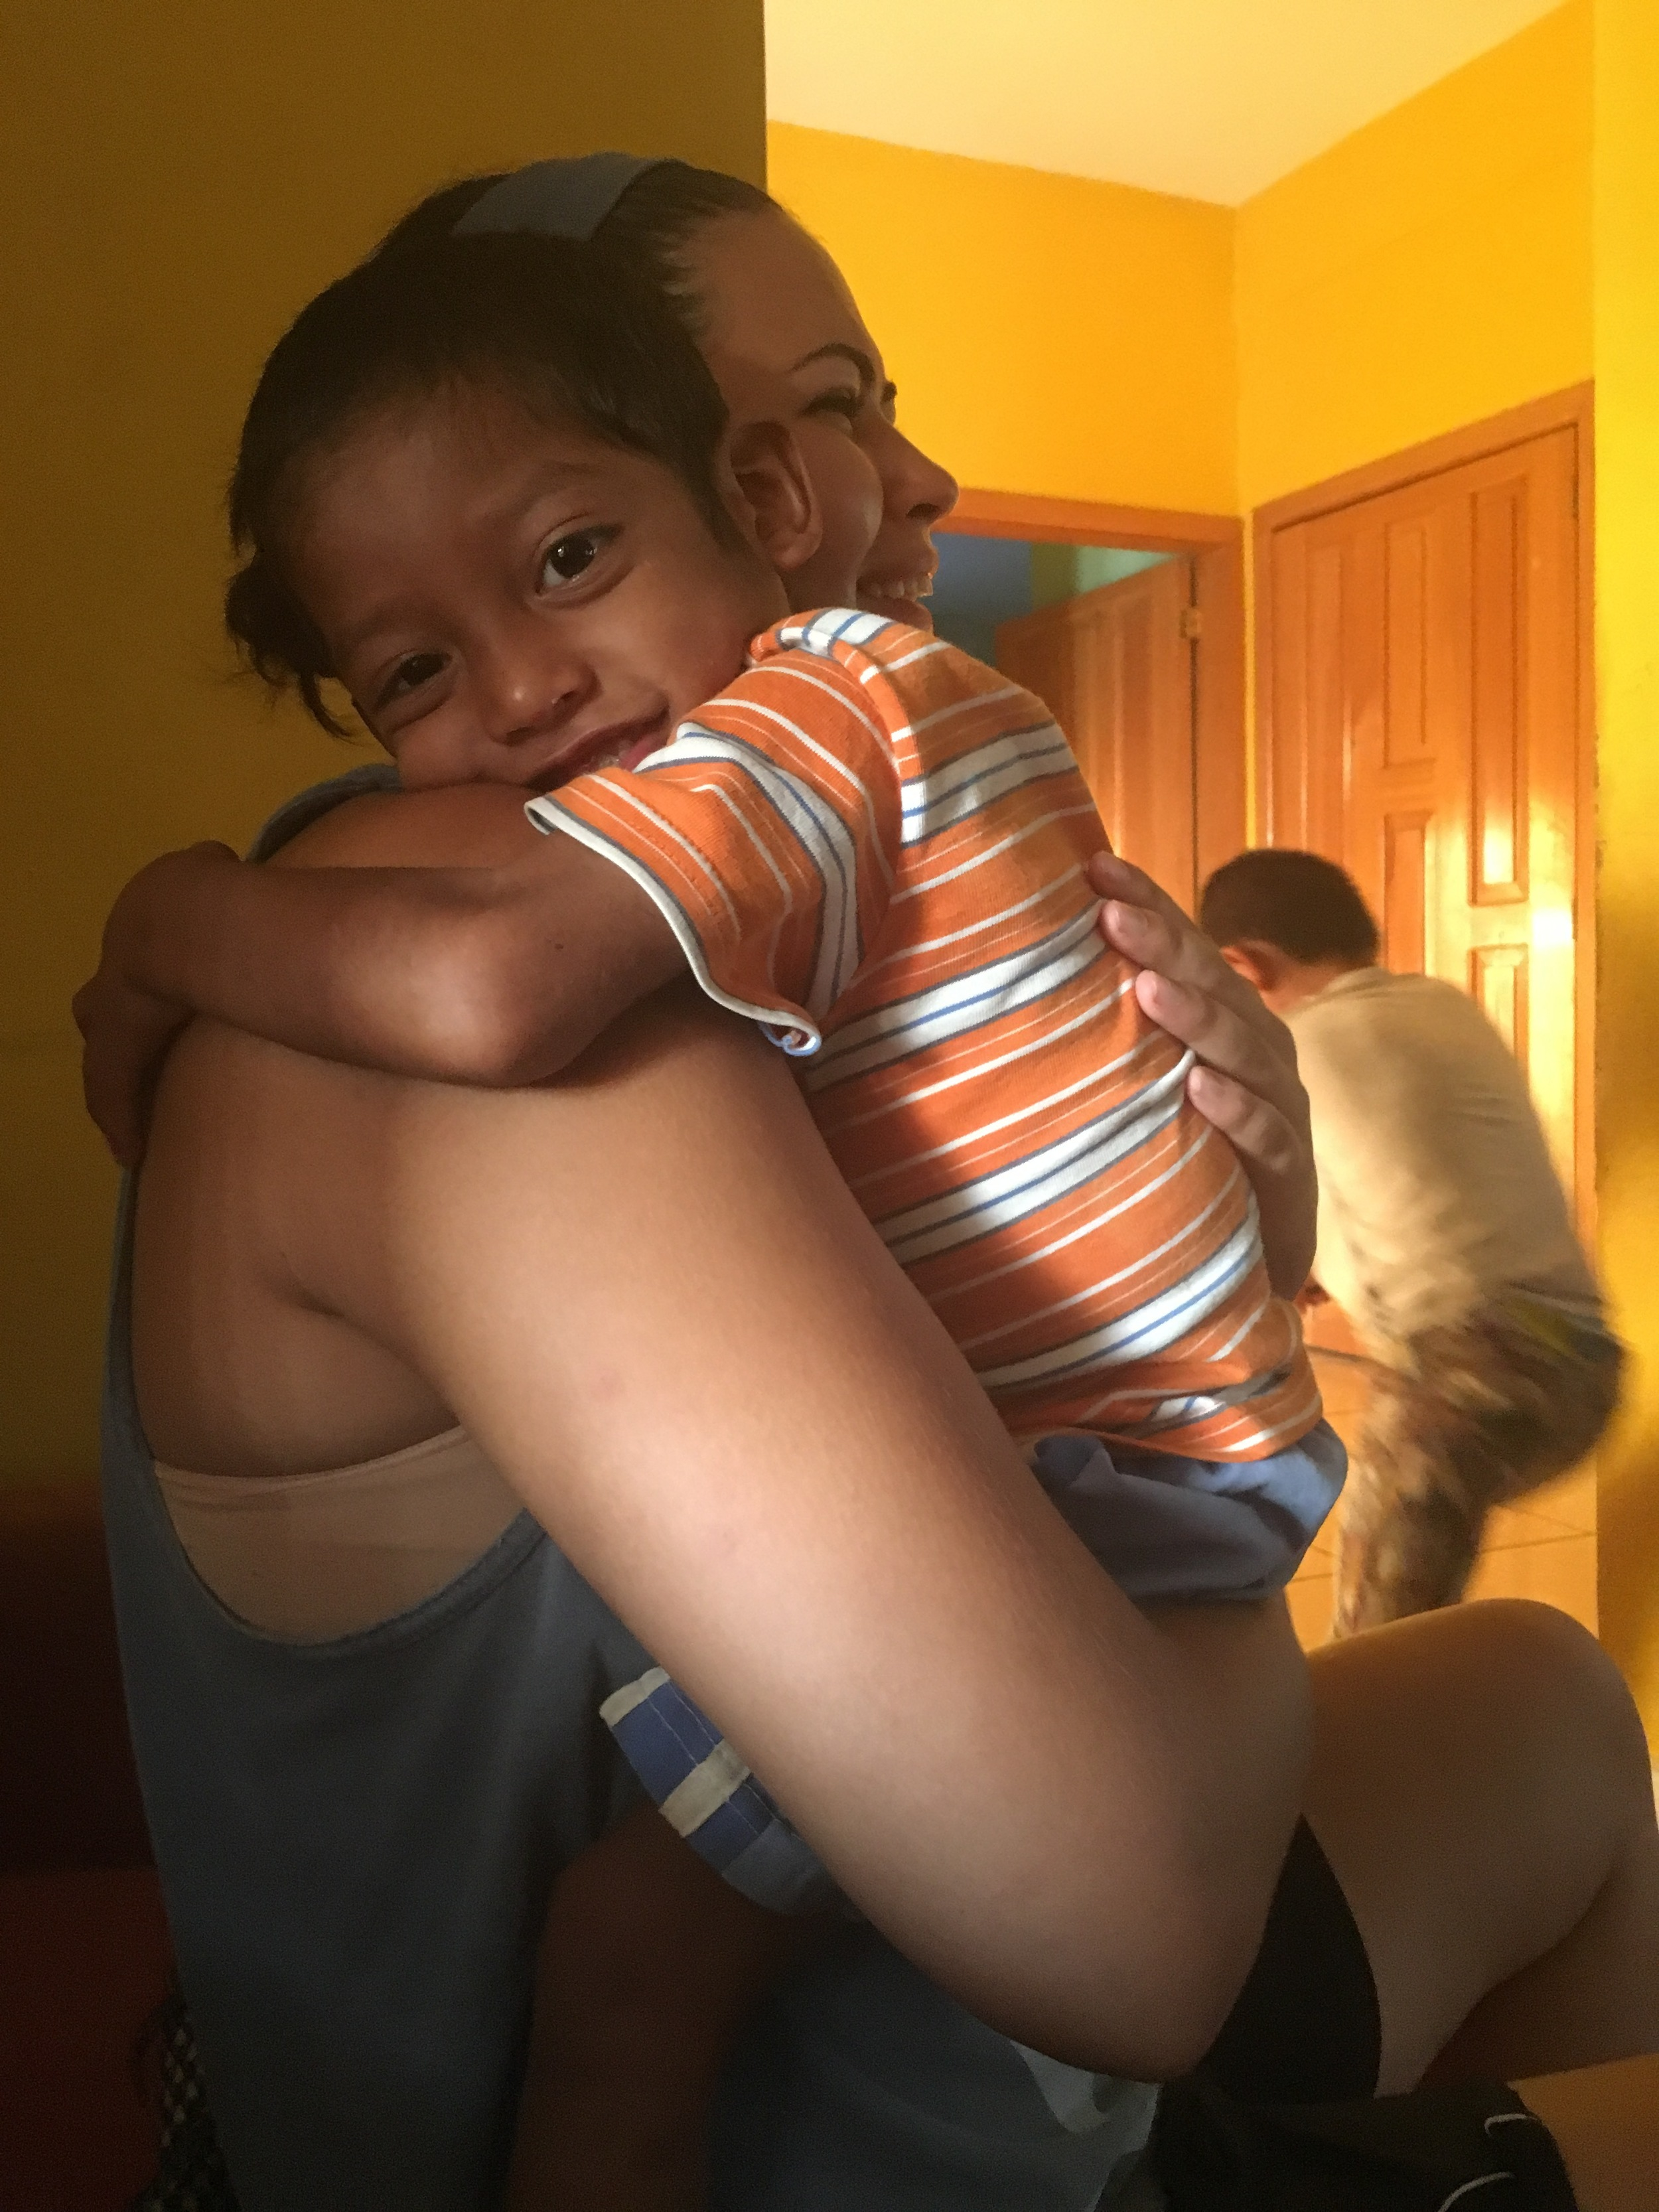 Miguelito gives the best hugs!